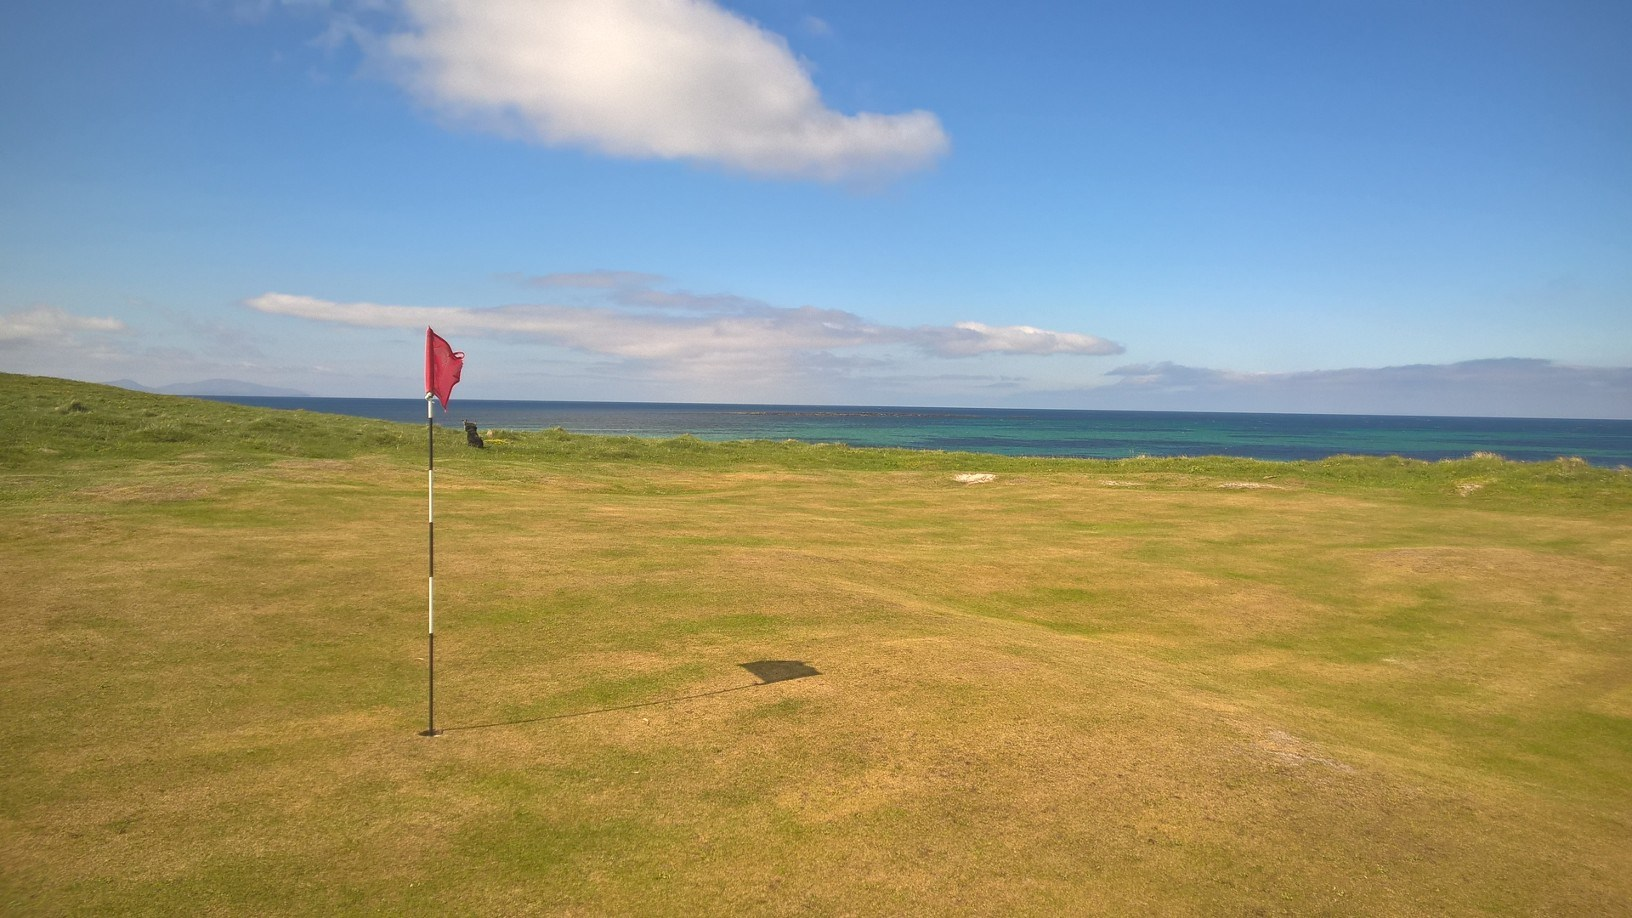 Overview of golf course named Askernish Golf Club